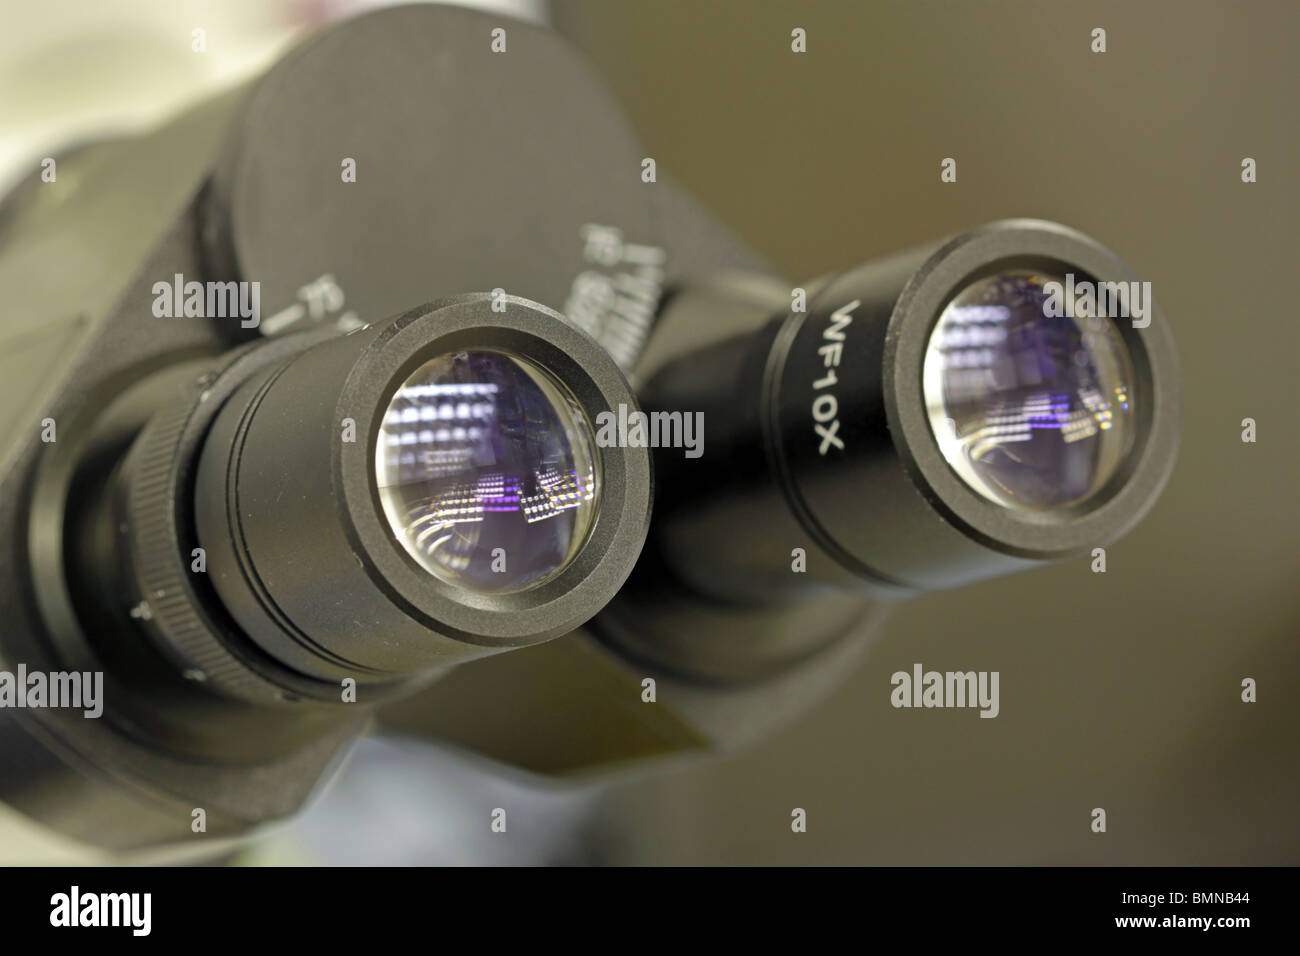 binocular microscope close up of eye piece - Stock Image